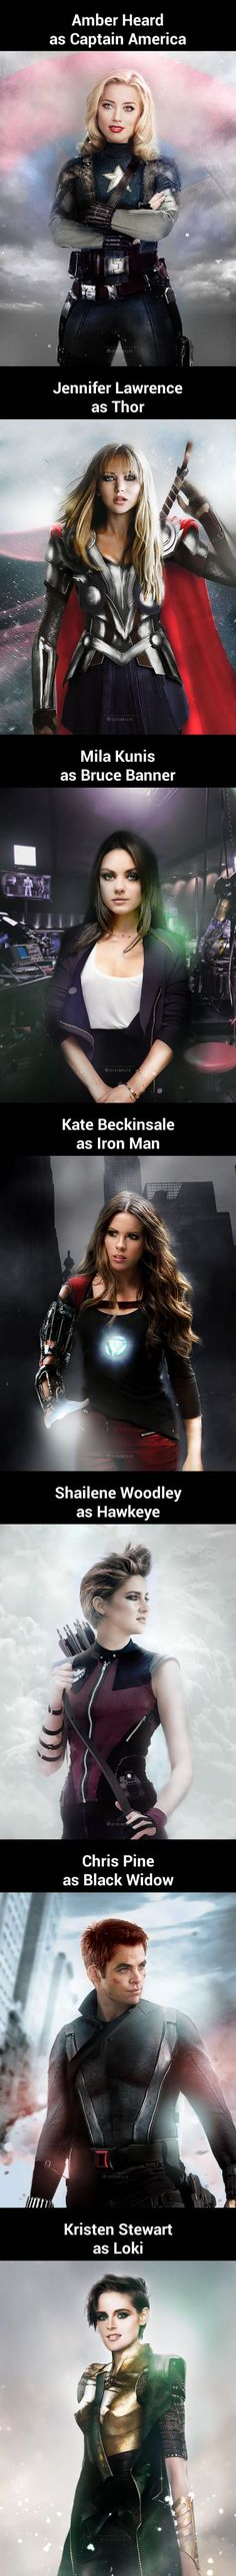 """Someone Swapped The Genders Of """"The Avengers"""" And It's Perfect"""